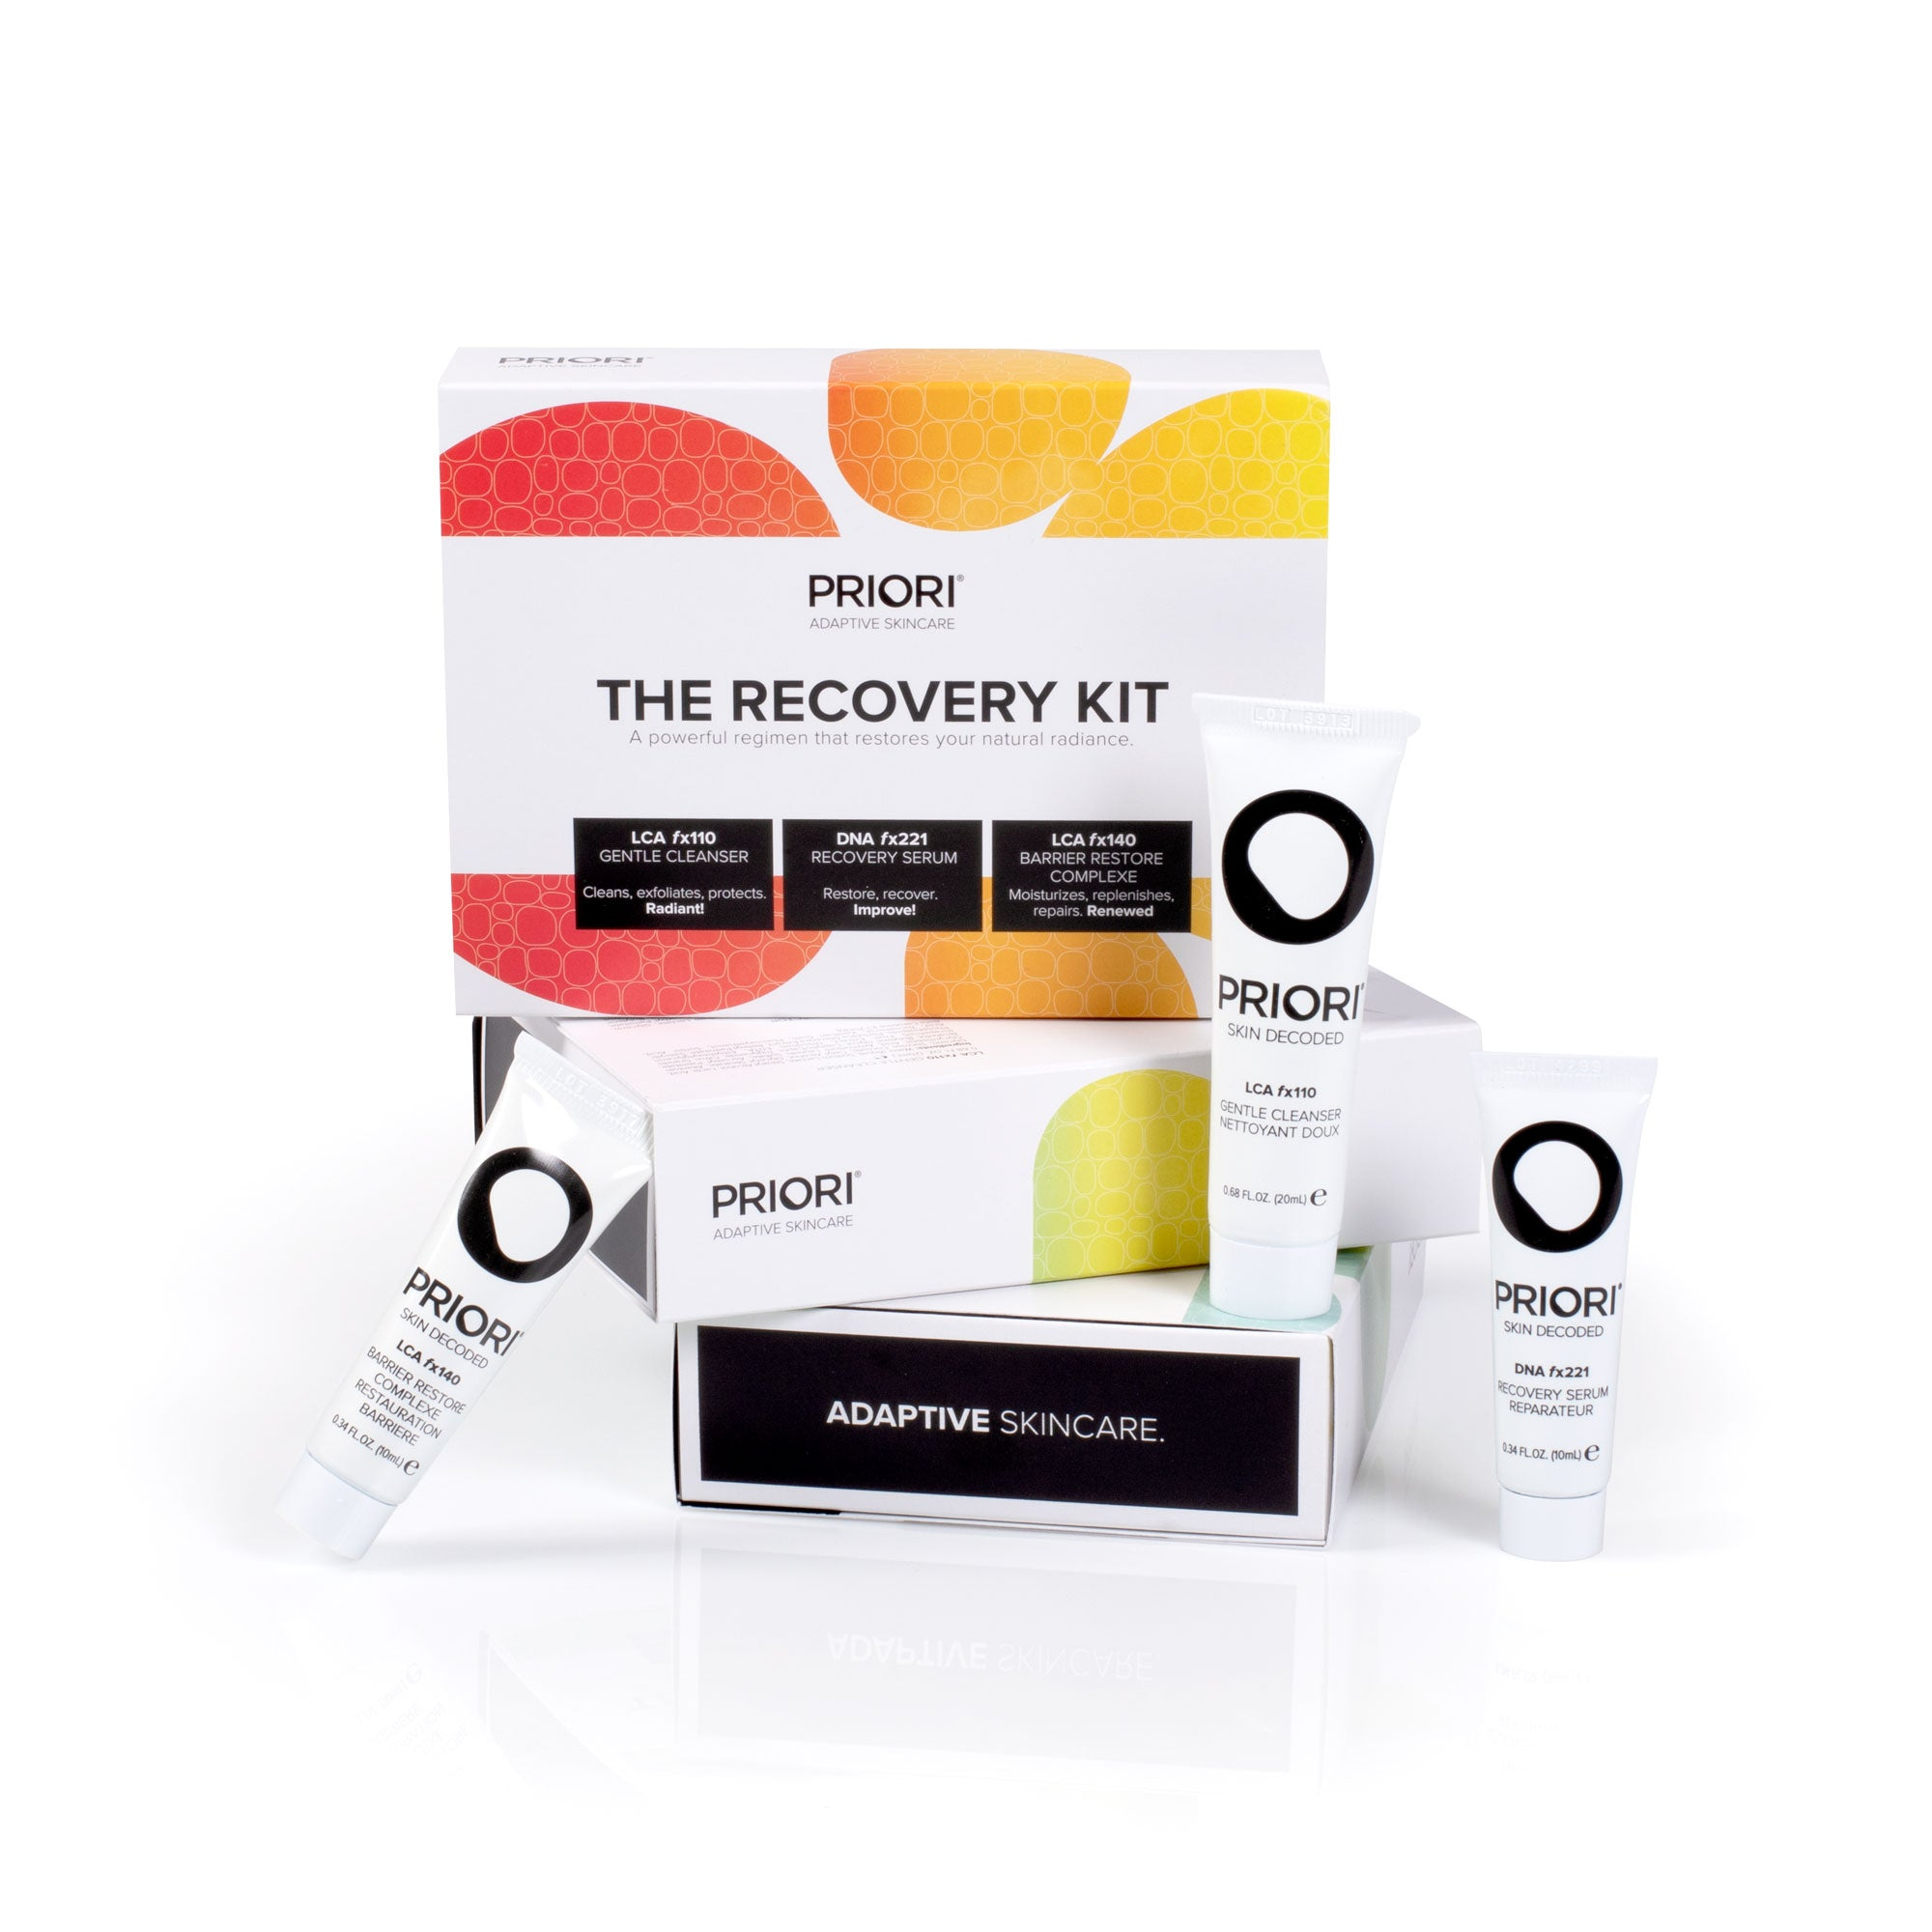 The Recovery Kit